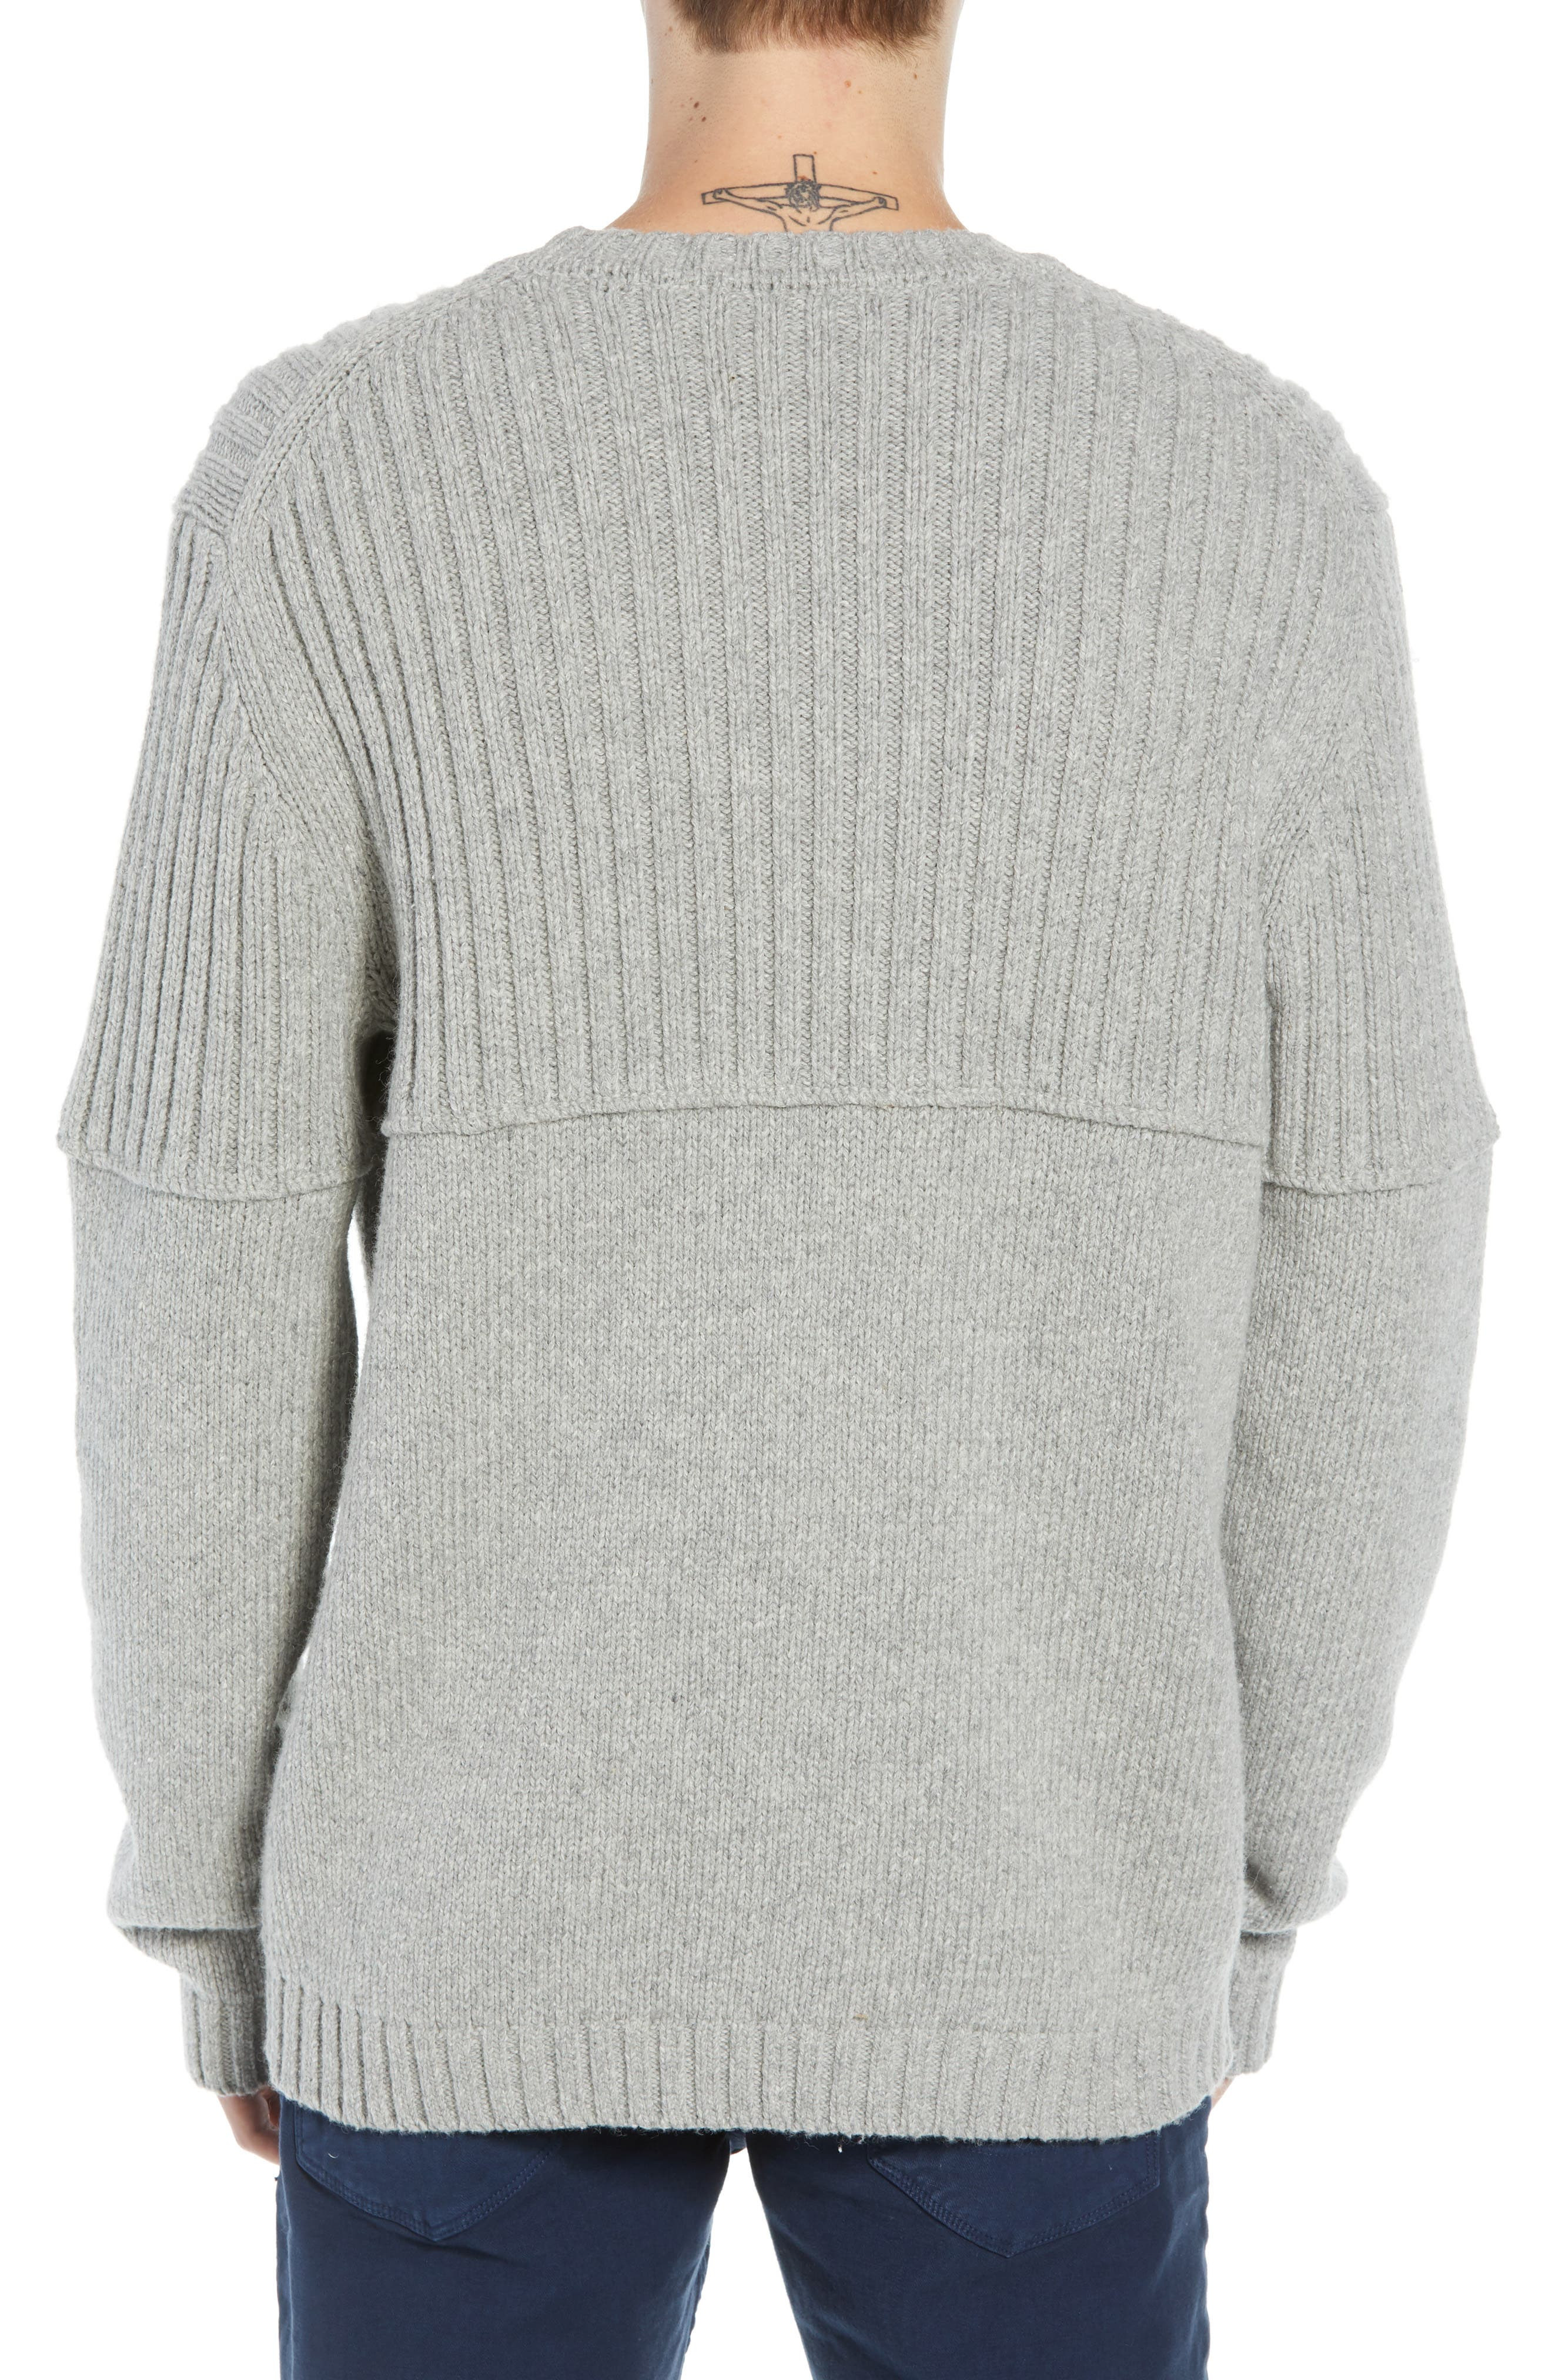 Split Linked Sweater,                             Alternate thumbnail 2, color,                             GREY MELANGE